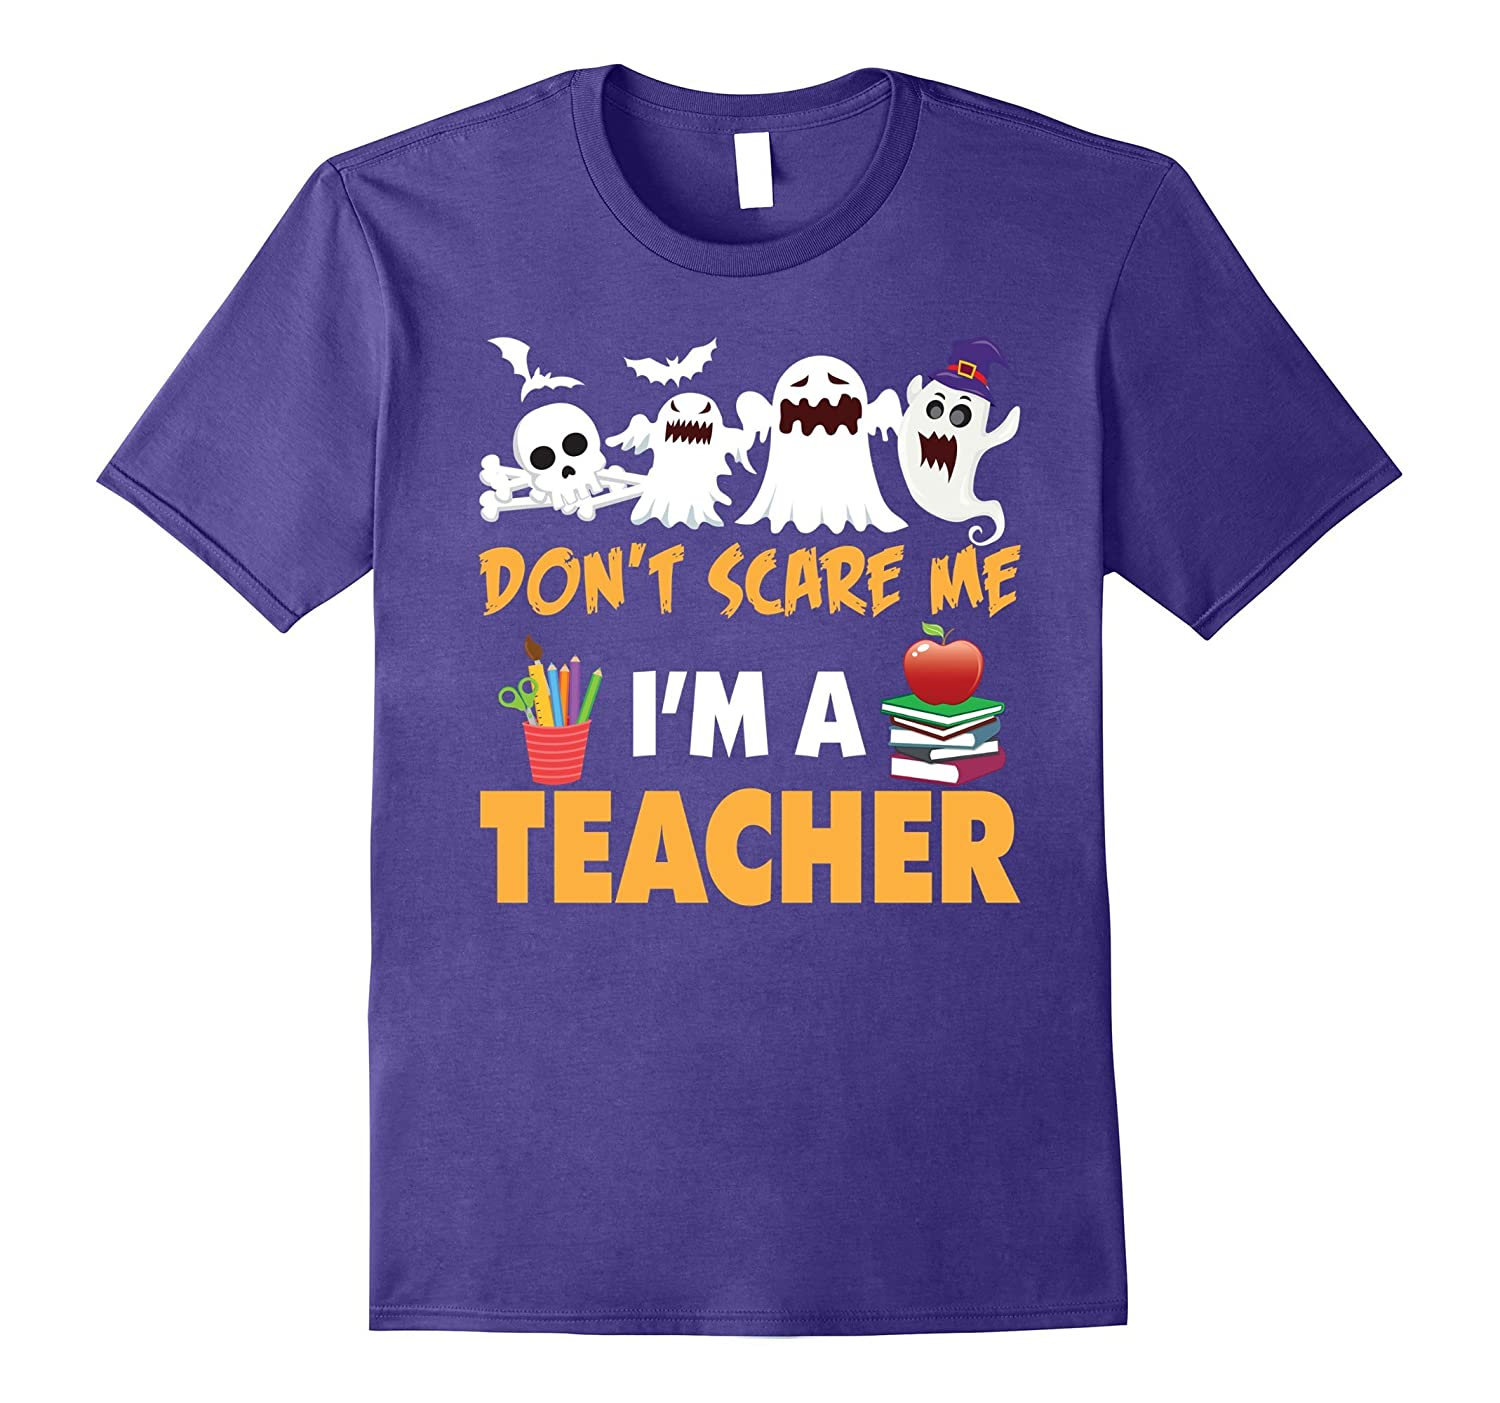 You Don't Scare Me I'm a Teacher Halloween T-Shirt Can't-CL